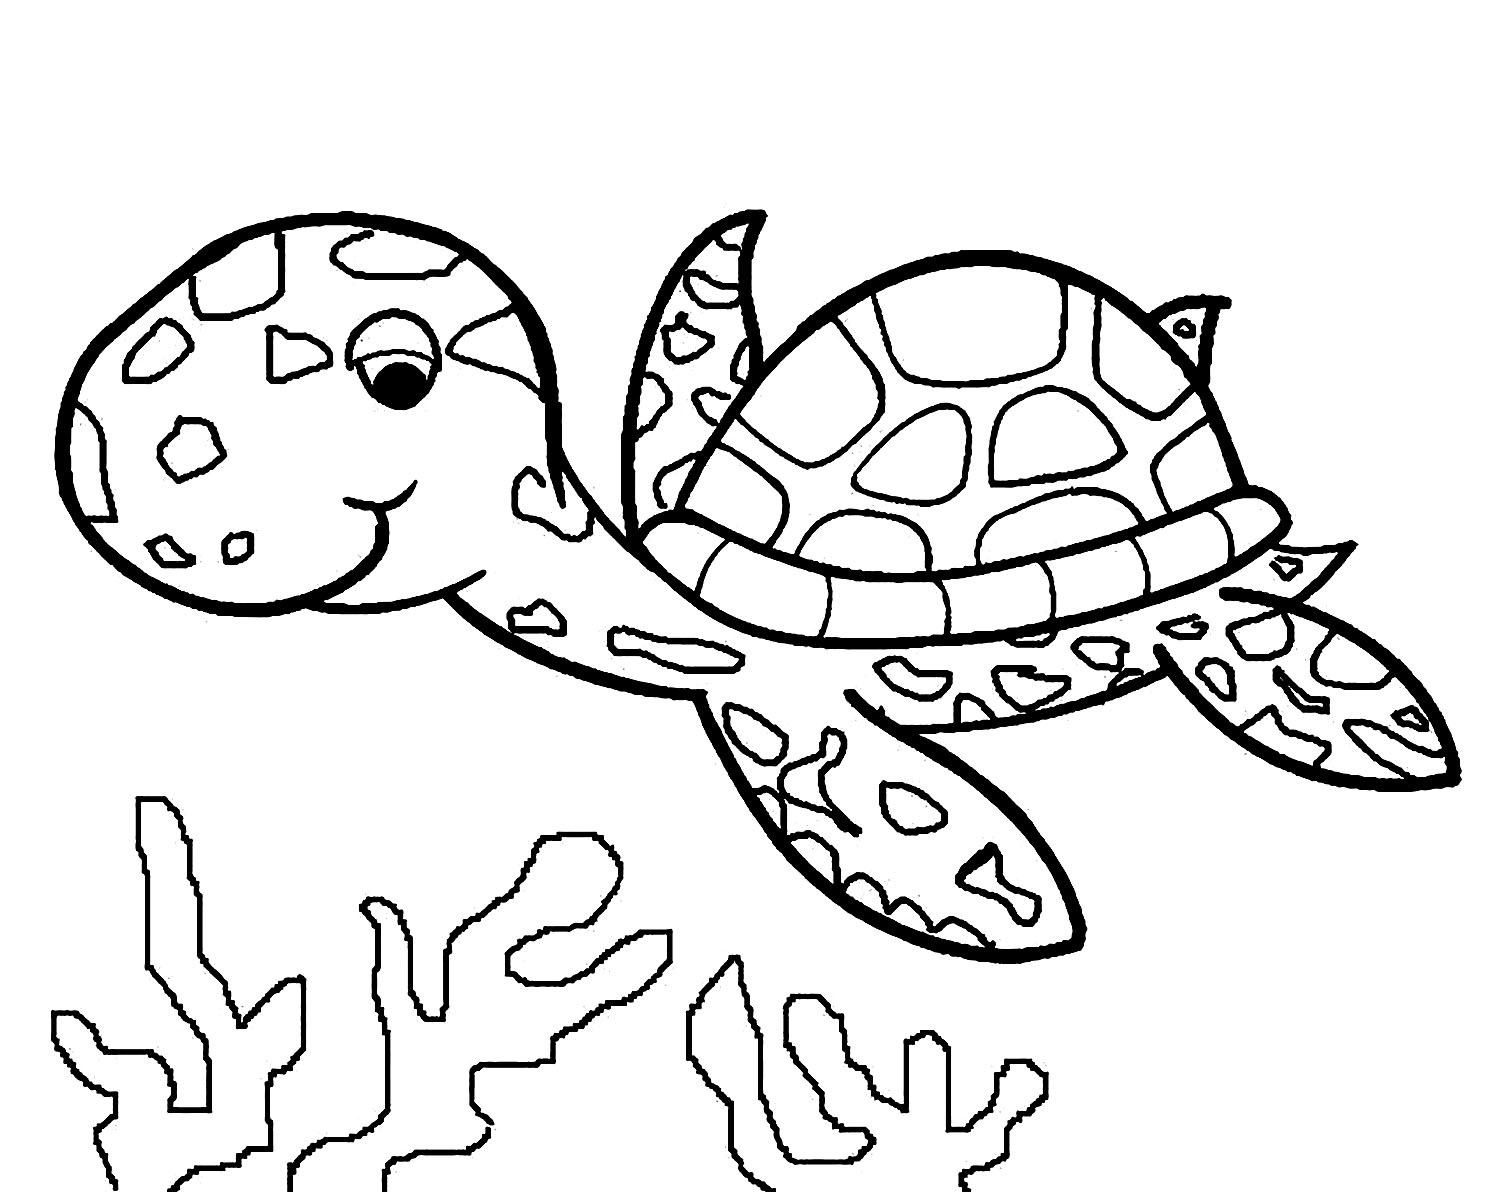 tortoise coloring page top 20 free printable turtle coloring pages online page coloring tortoise